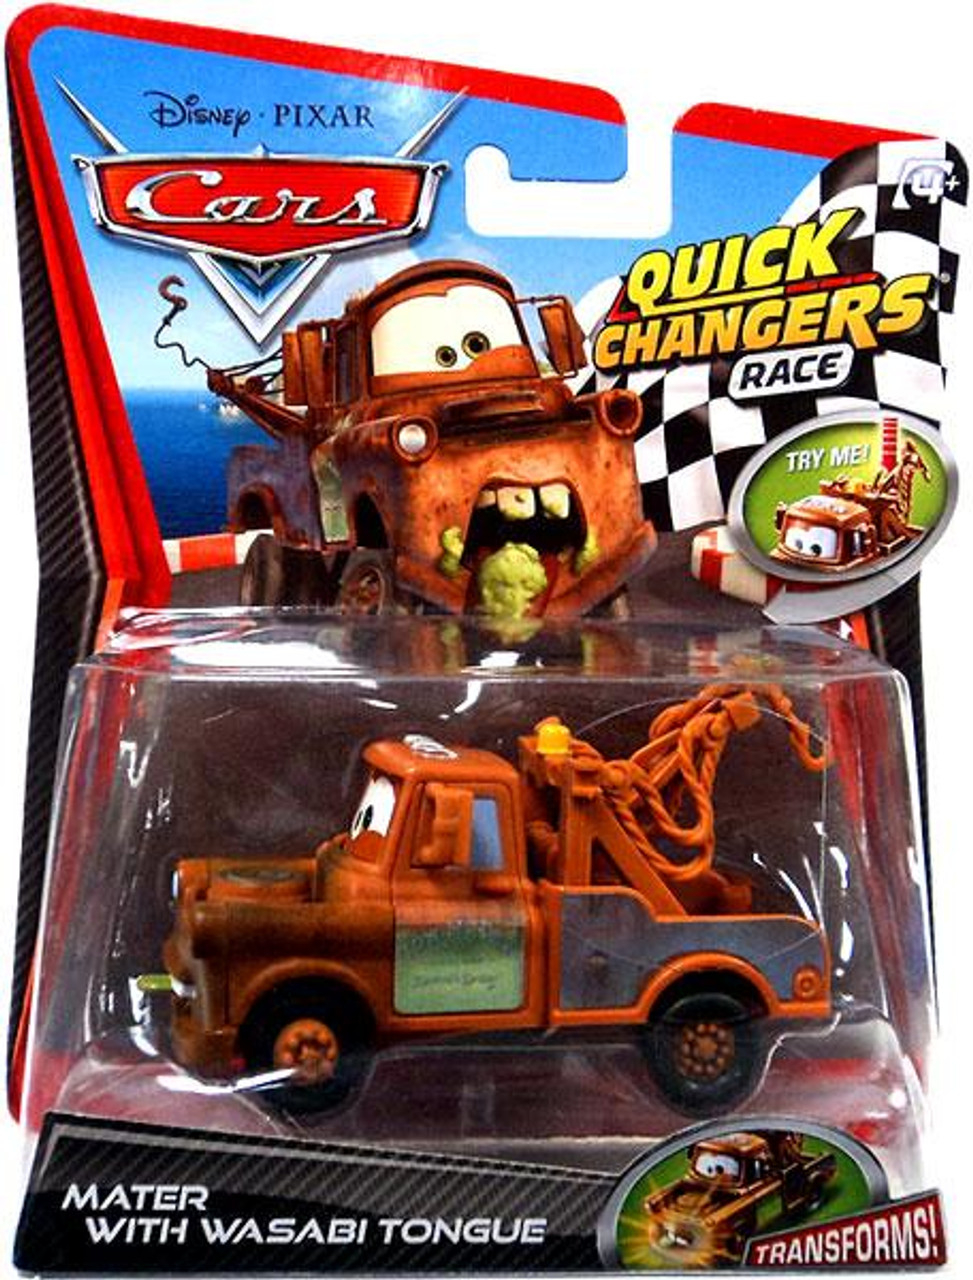 Disney Cars Cars 2 Quick Changers Race Mater with Wasabi Tongue Diecast Car